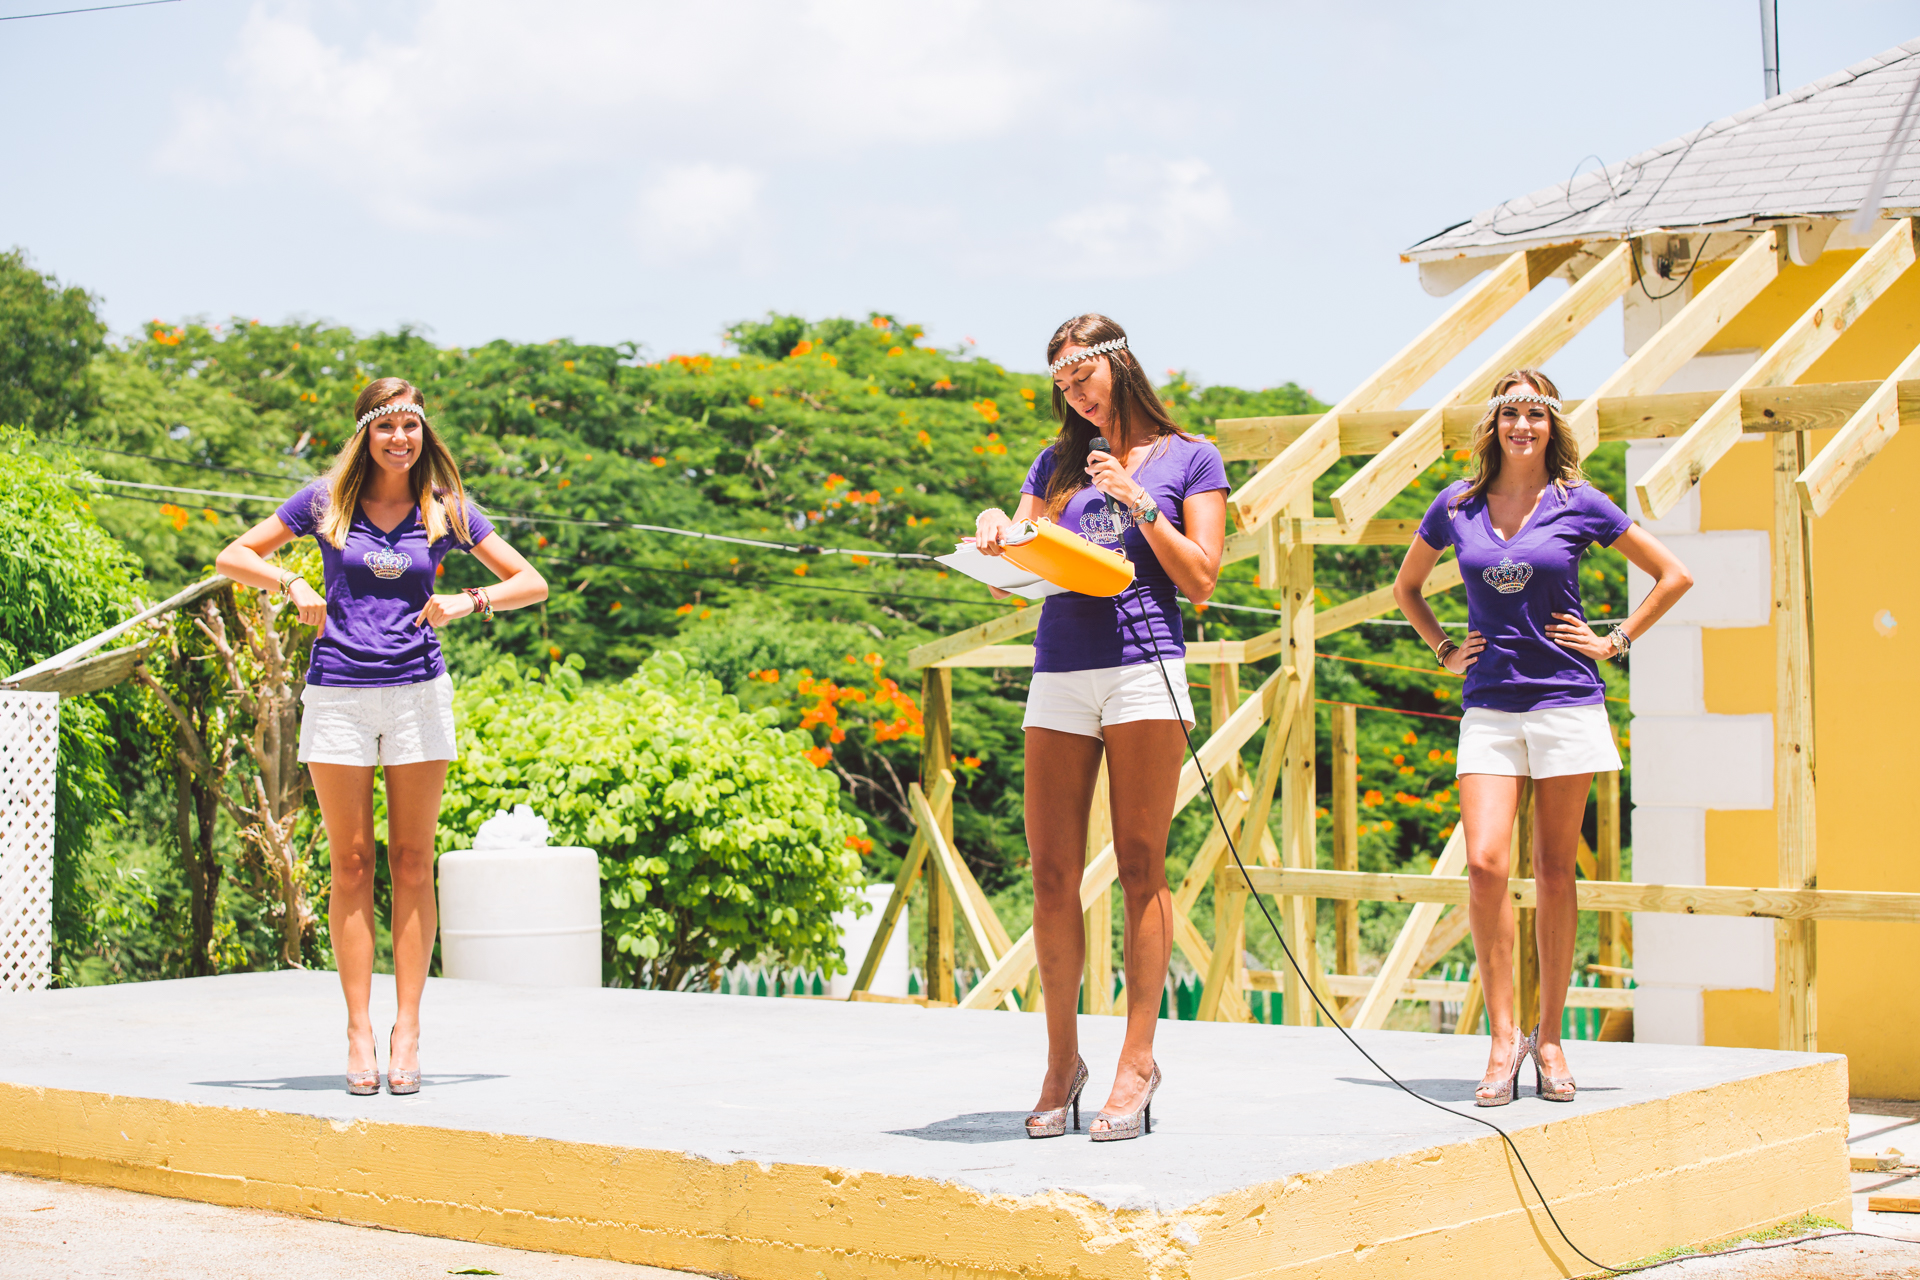 pageant of hope bahamas 2016-133.jpg